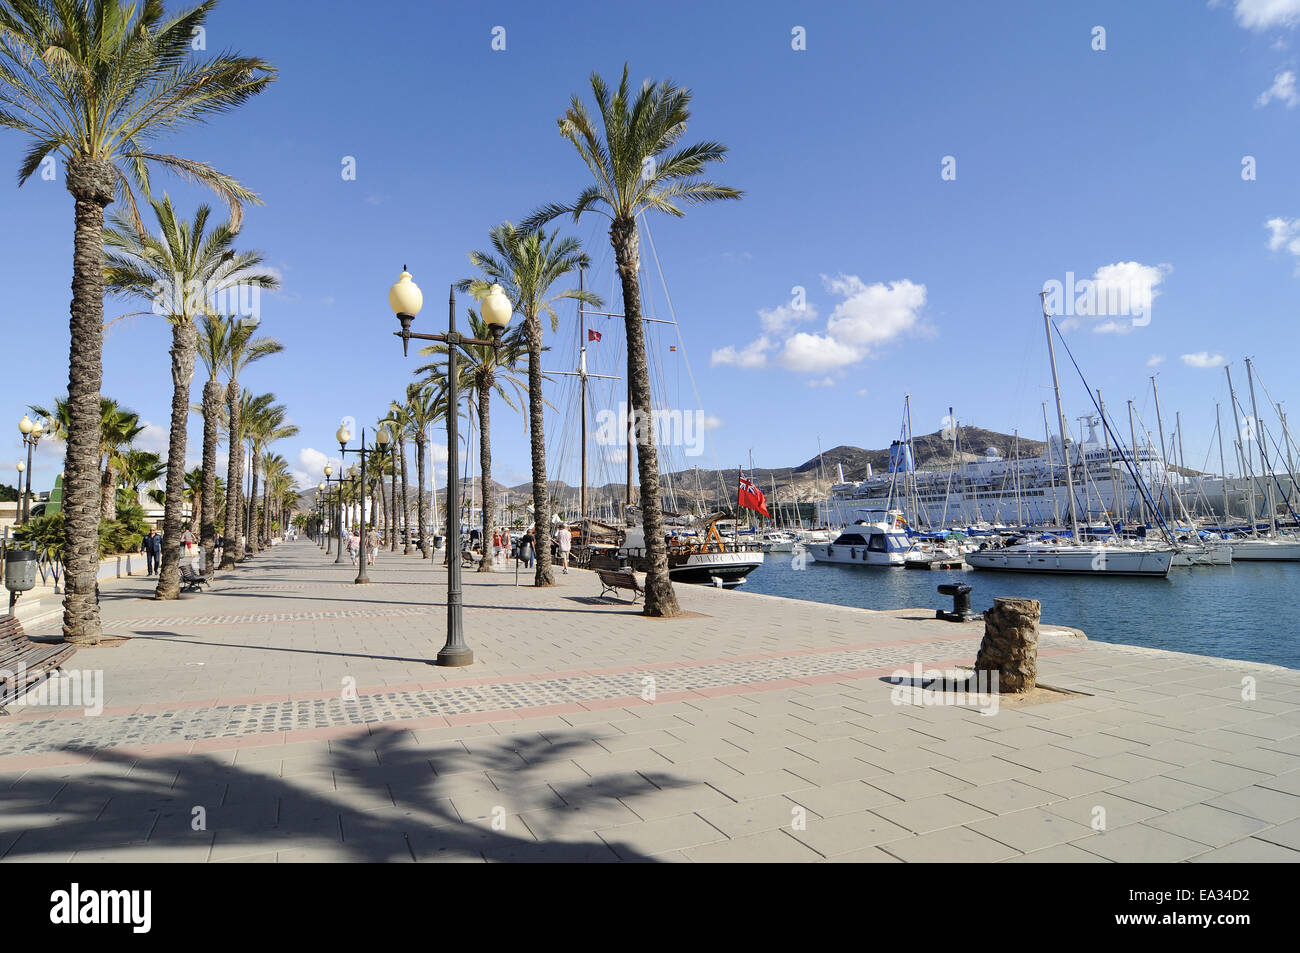 harbour, Cartagena, Spain Stock Photo